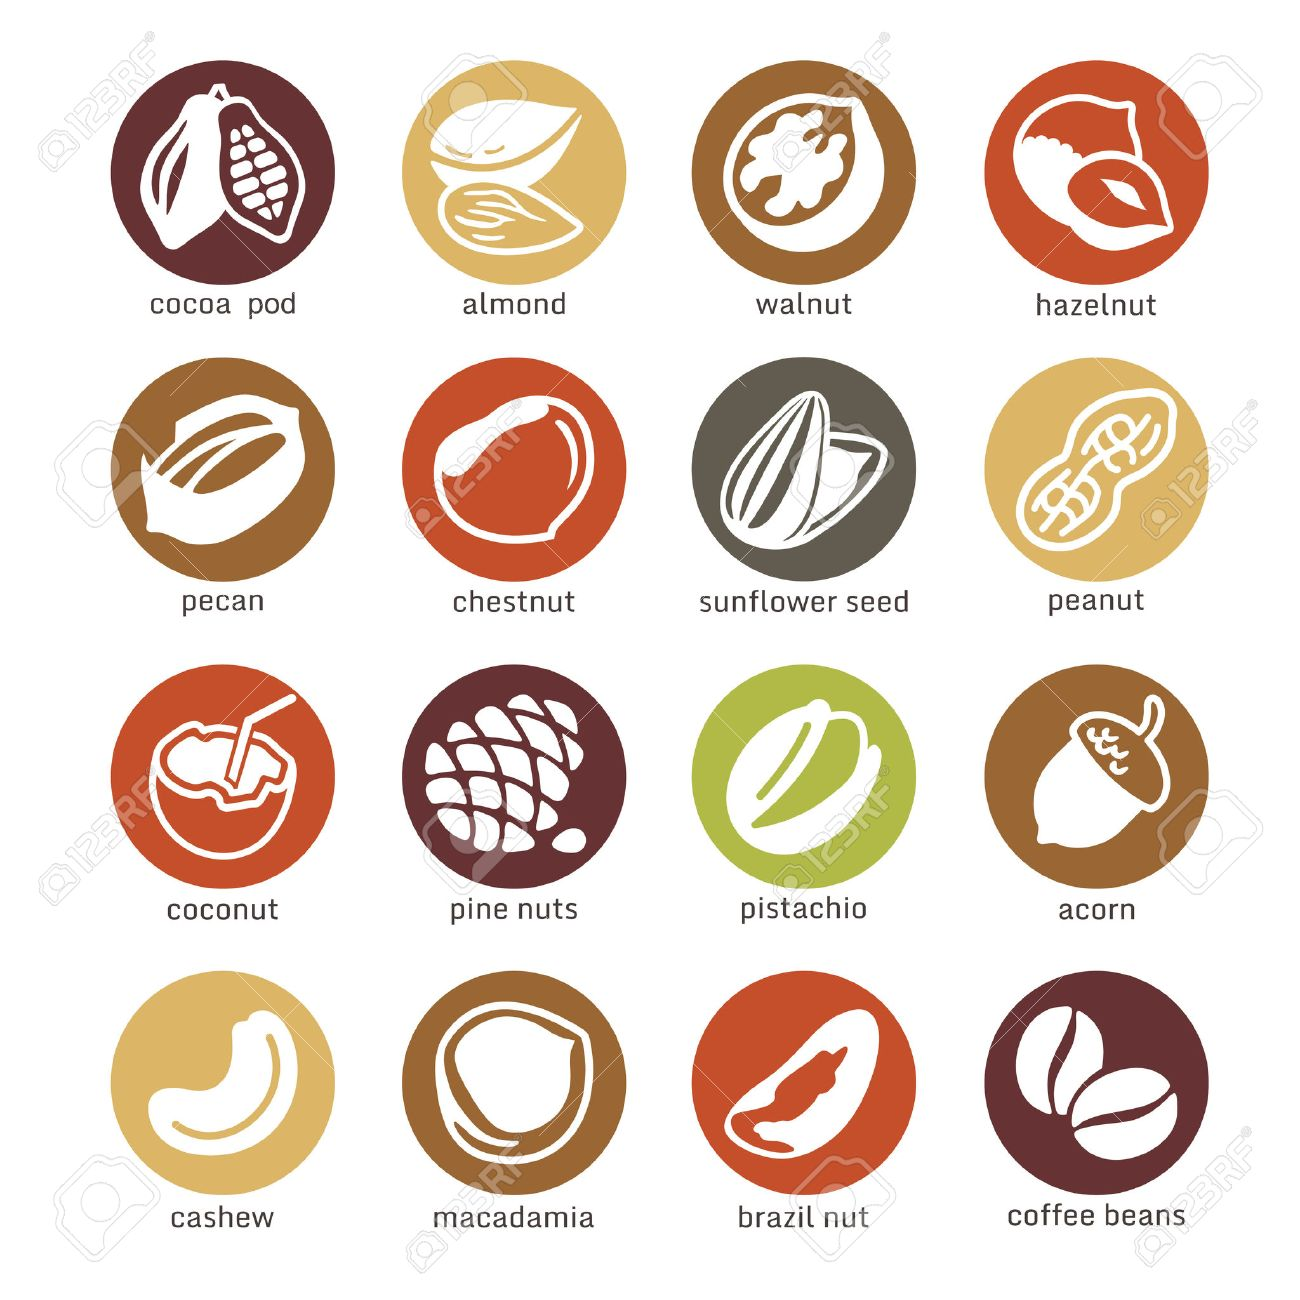 Web icons collection - nuts, beans and seed - 35616435